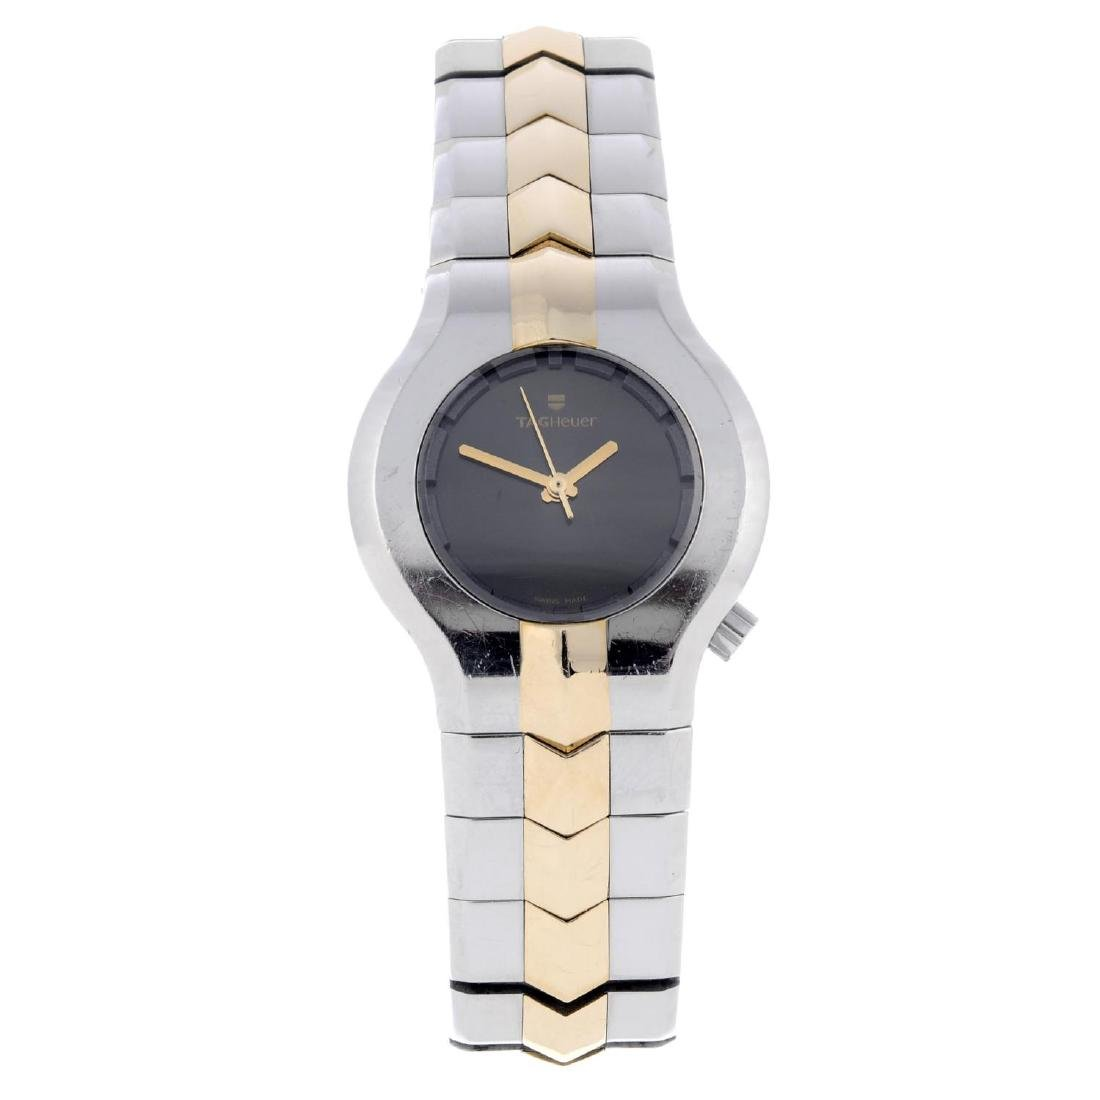 TAG HEUER -  a lady's Alter Ego bracelet watch.